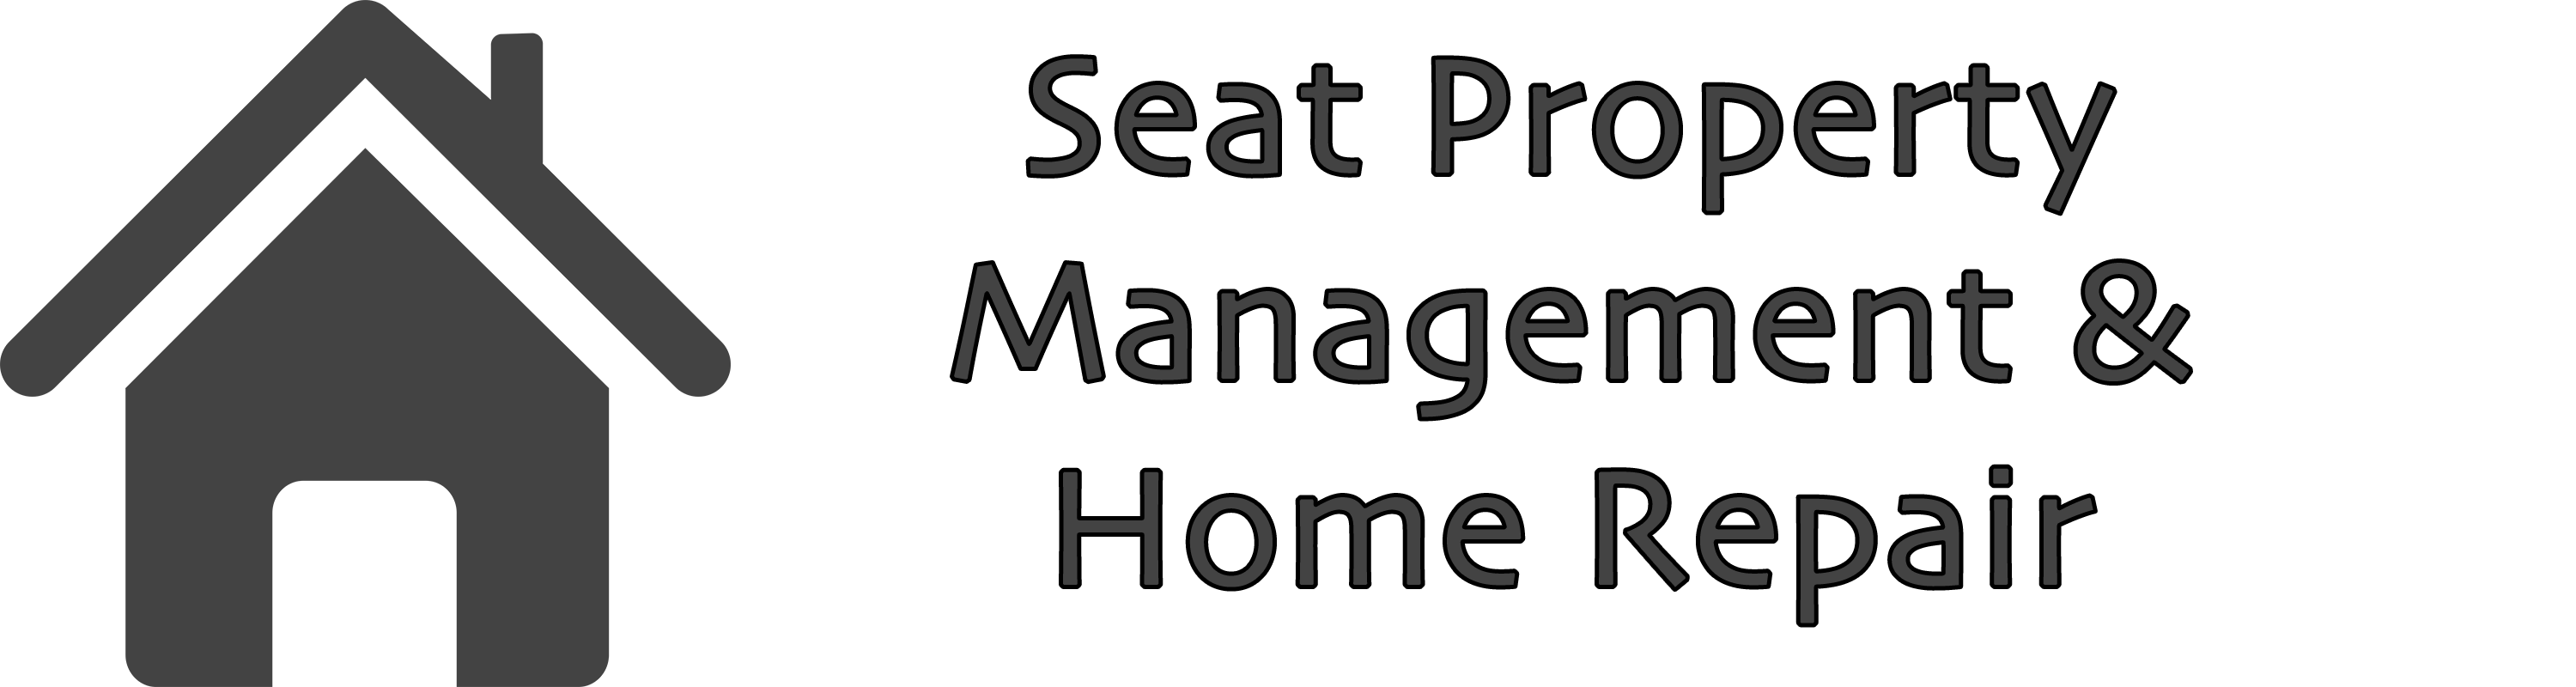 Seat Property Management and Home Repair